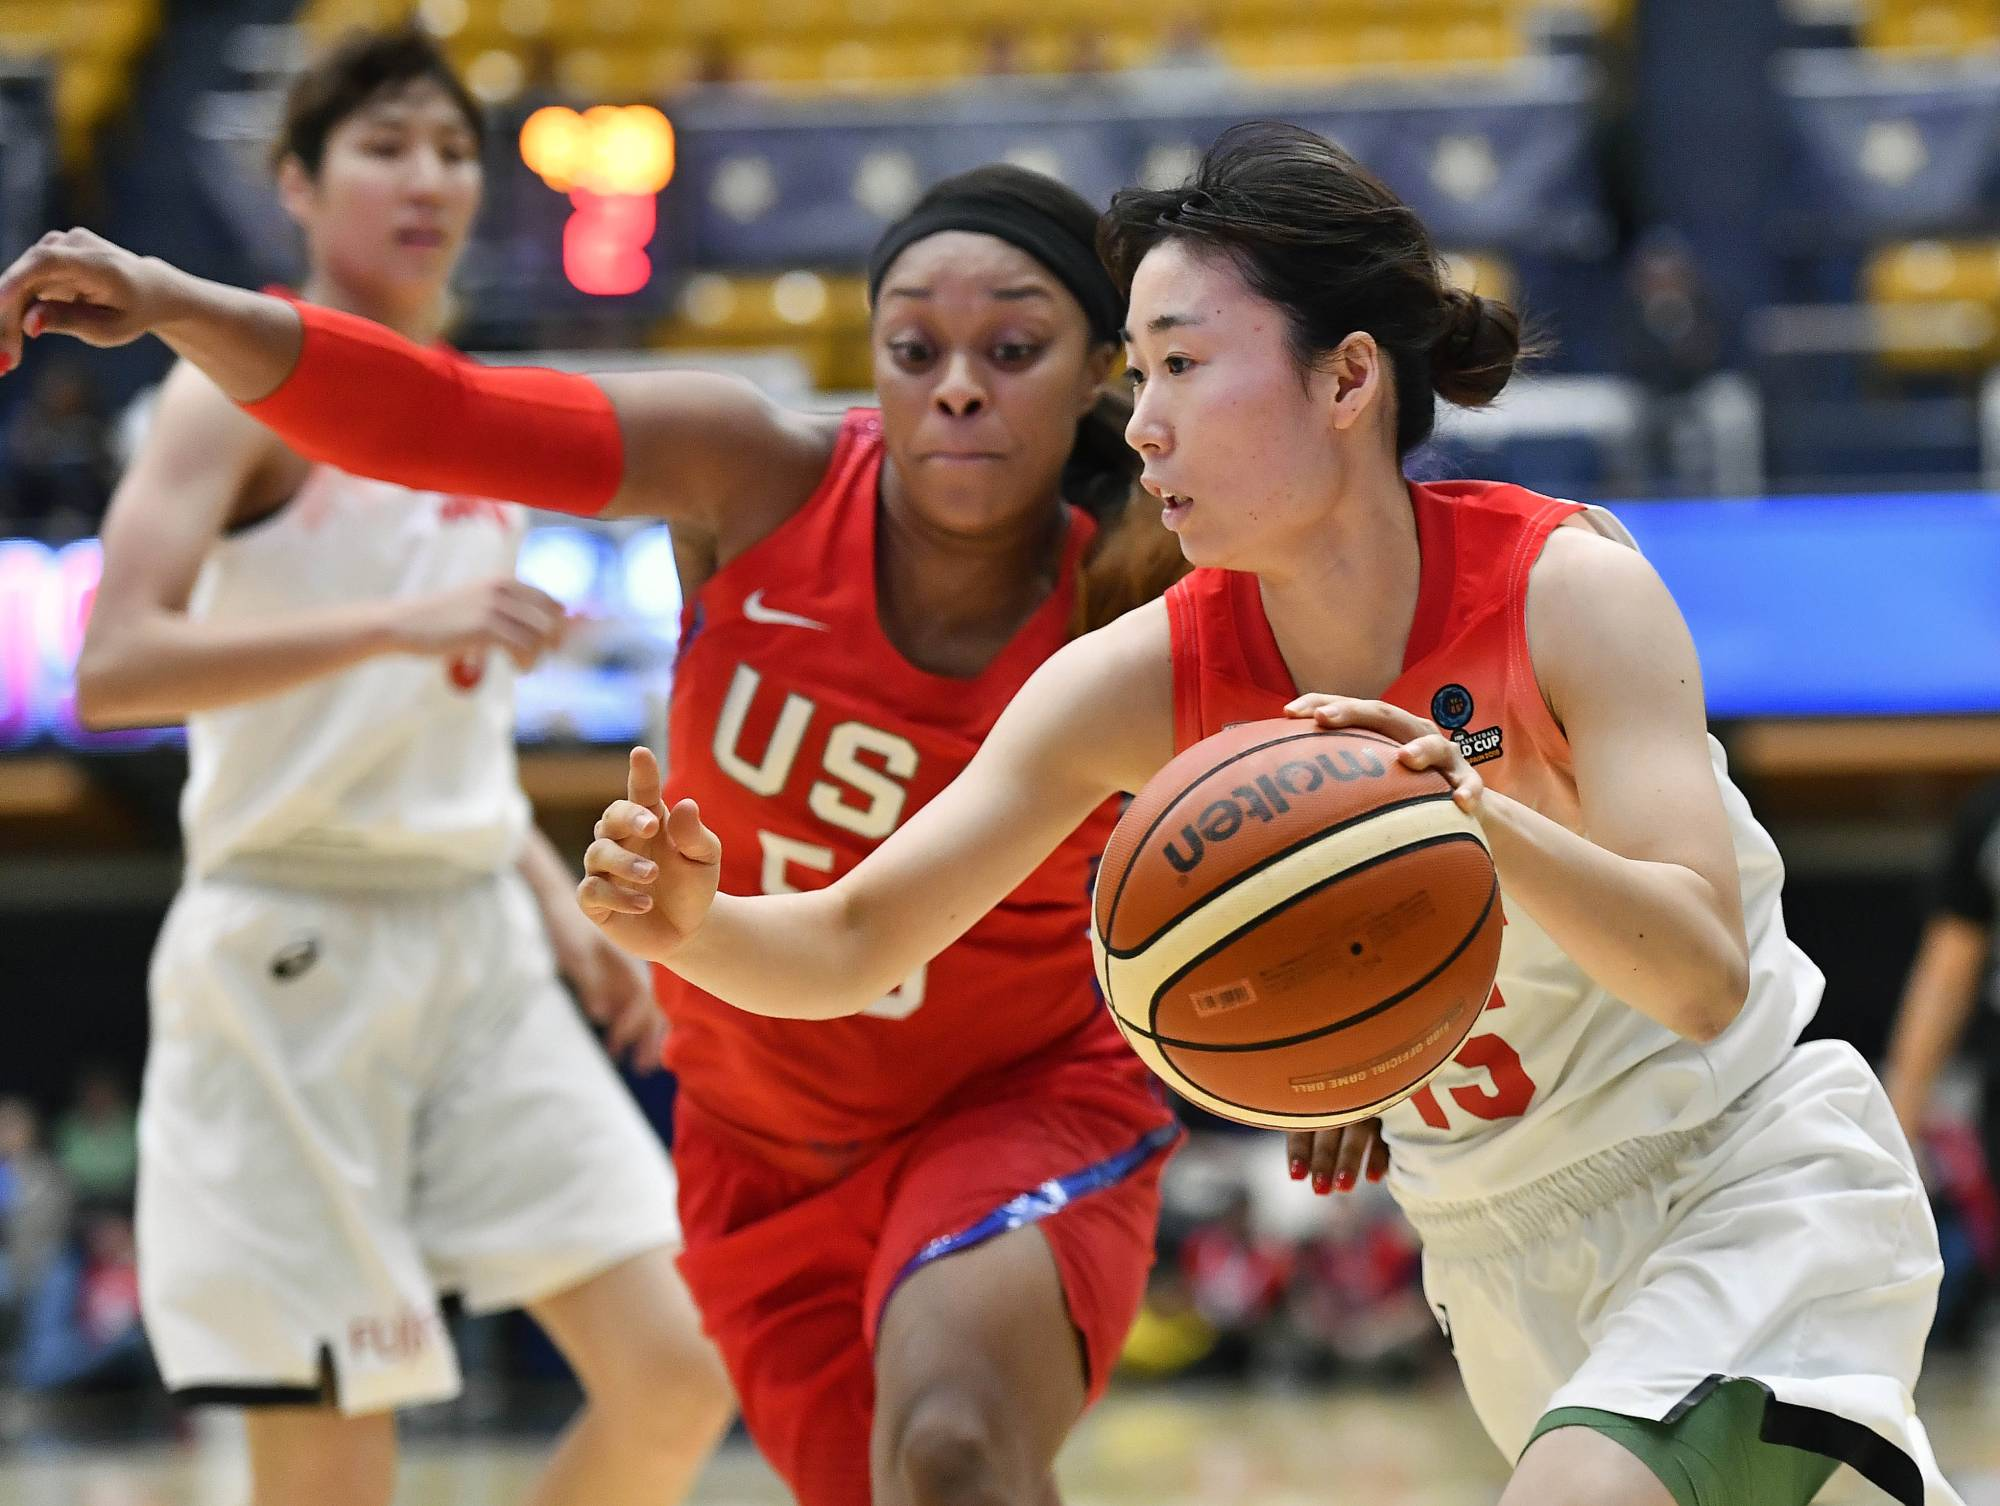 Japan's women's team may have to play without guard Nako Motohashi during the 2020 Tokyo Games. | USA TODAY / VIA REUTERS